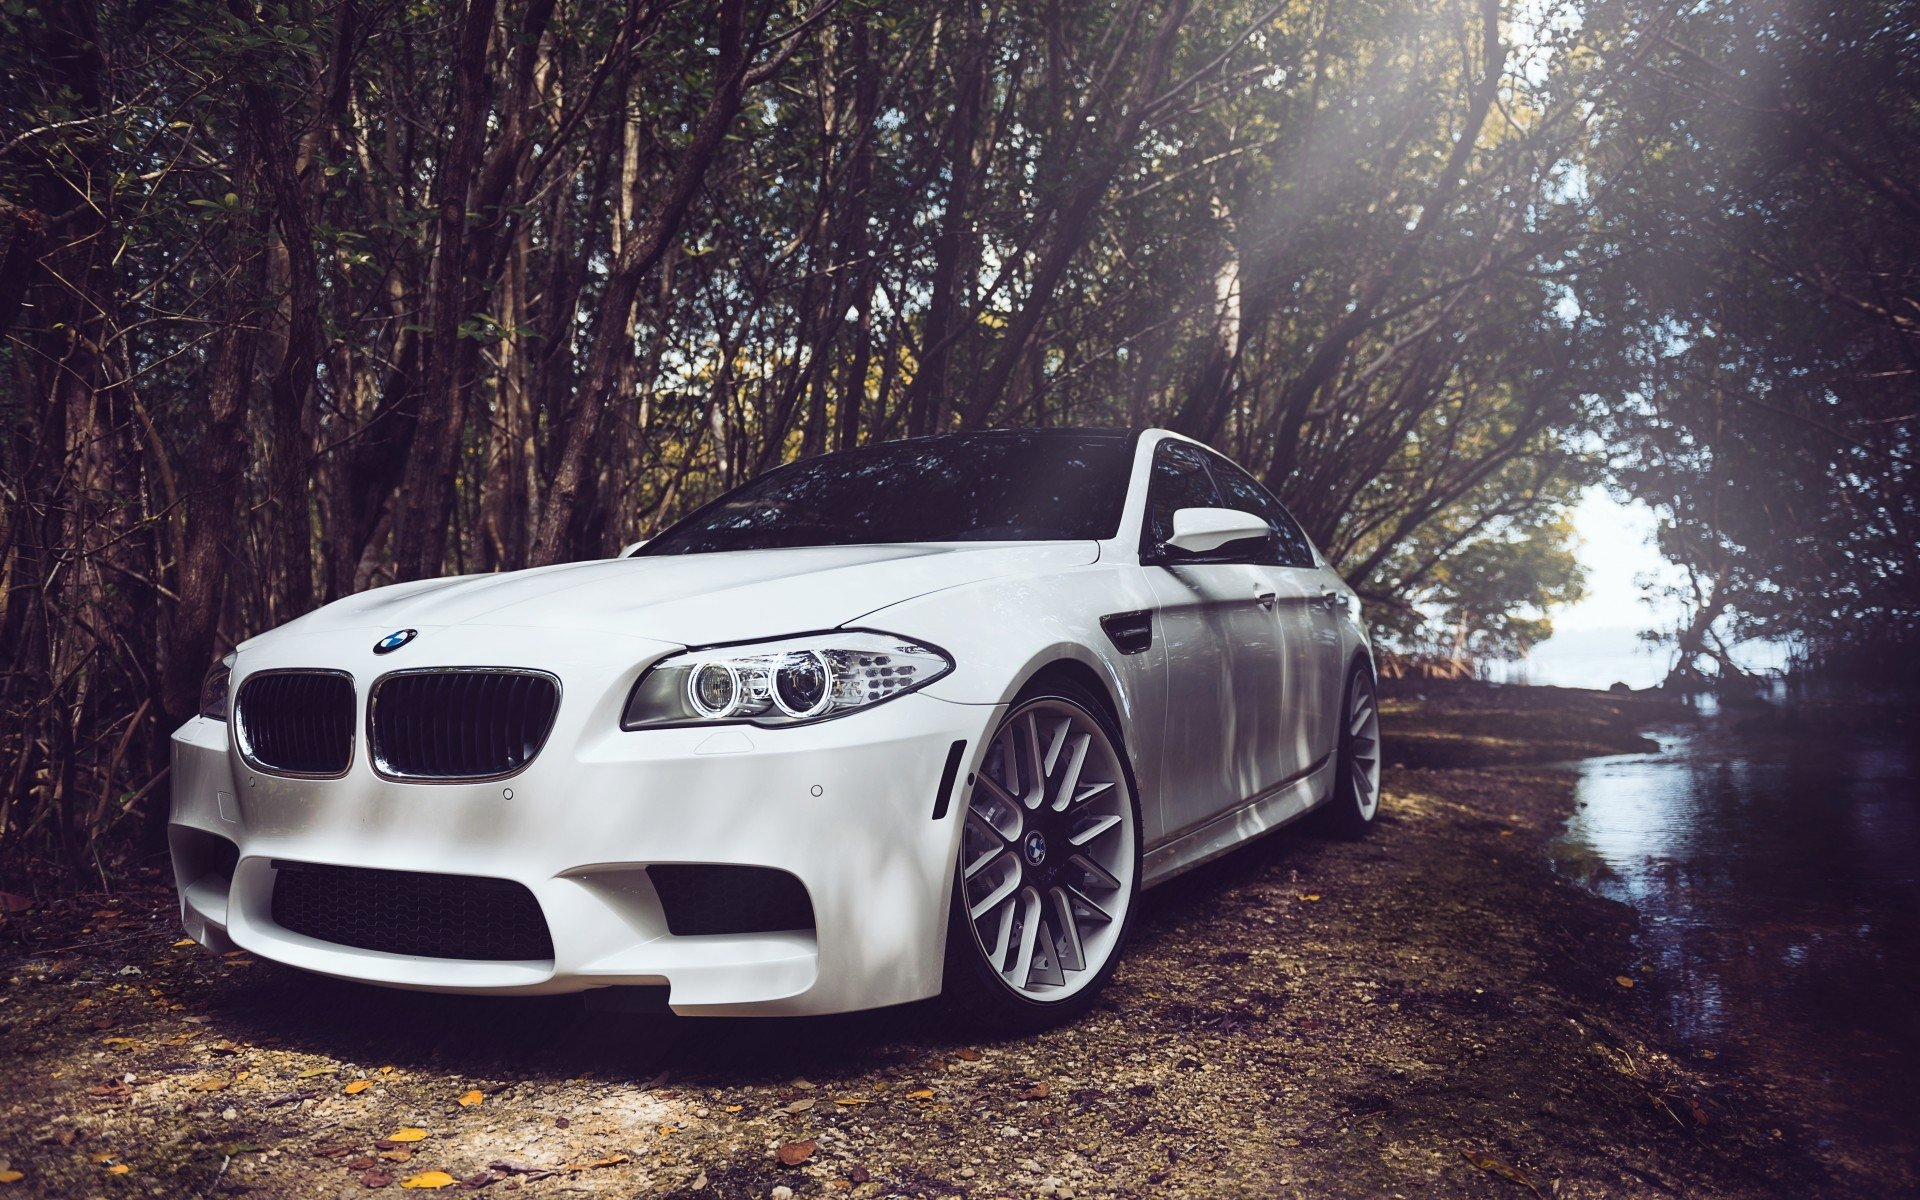 29 BMW M5 HD Wallpapers | Backgrounds - Wallpaper Abyss